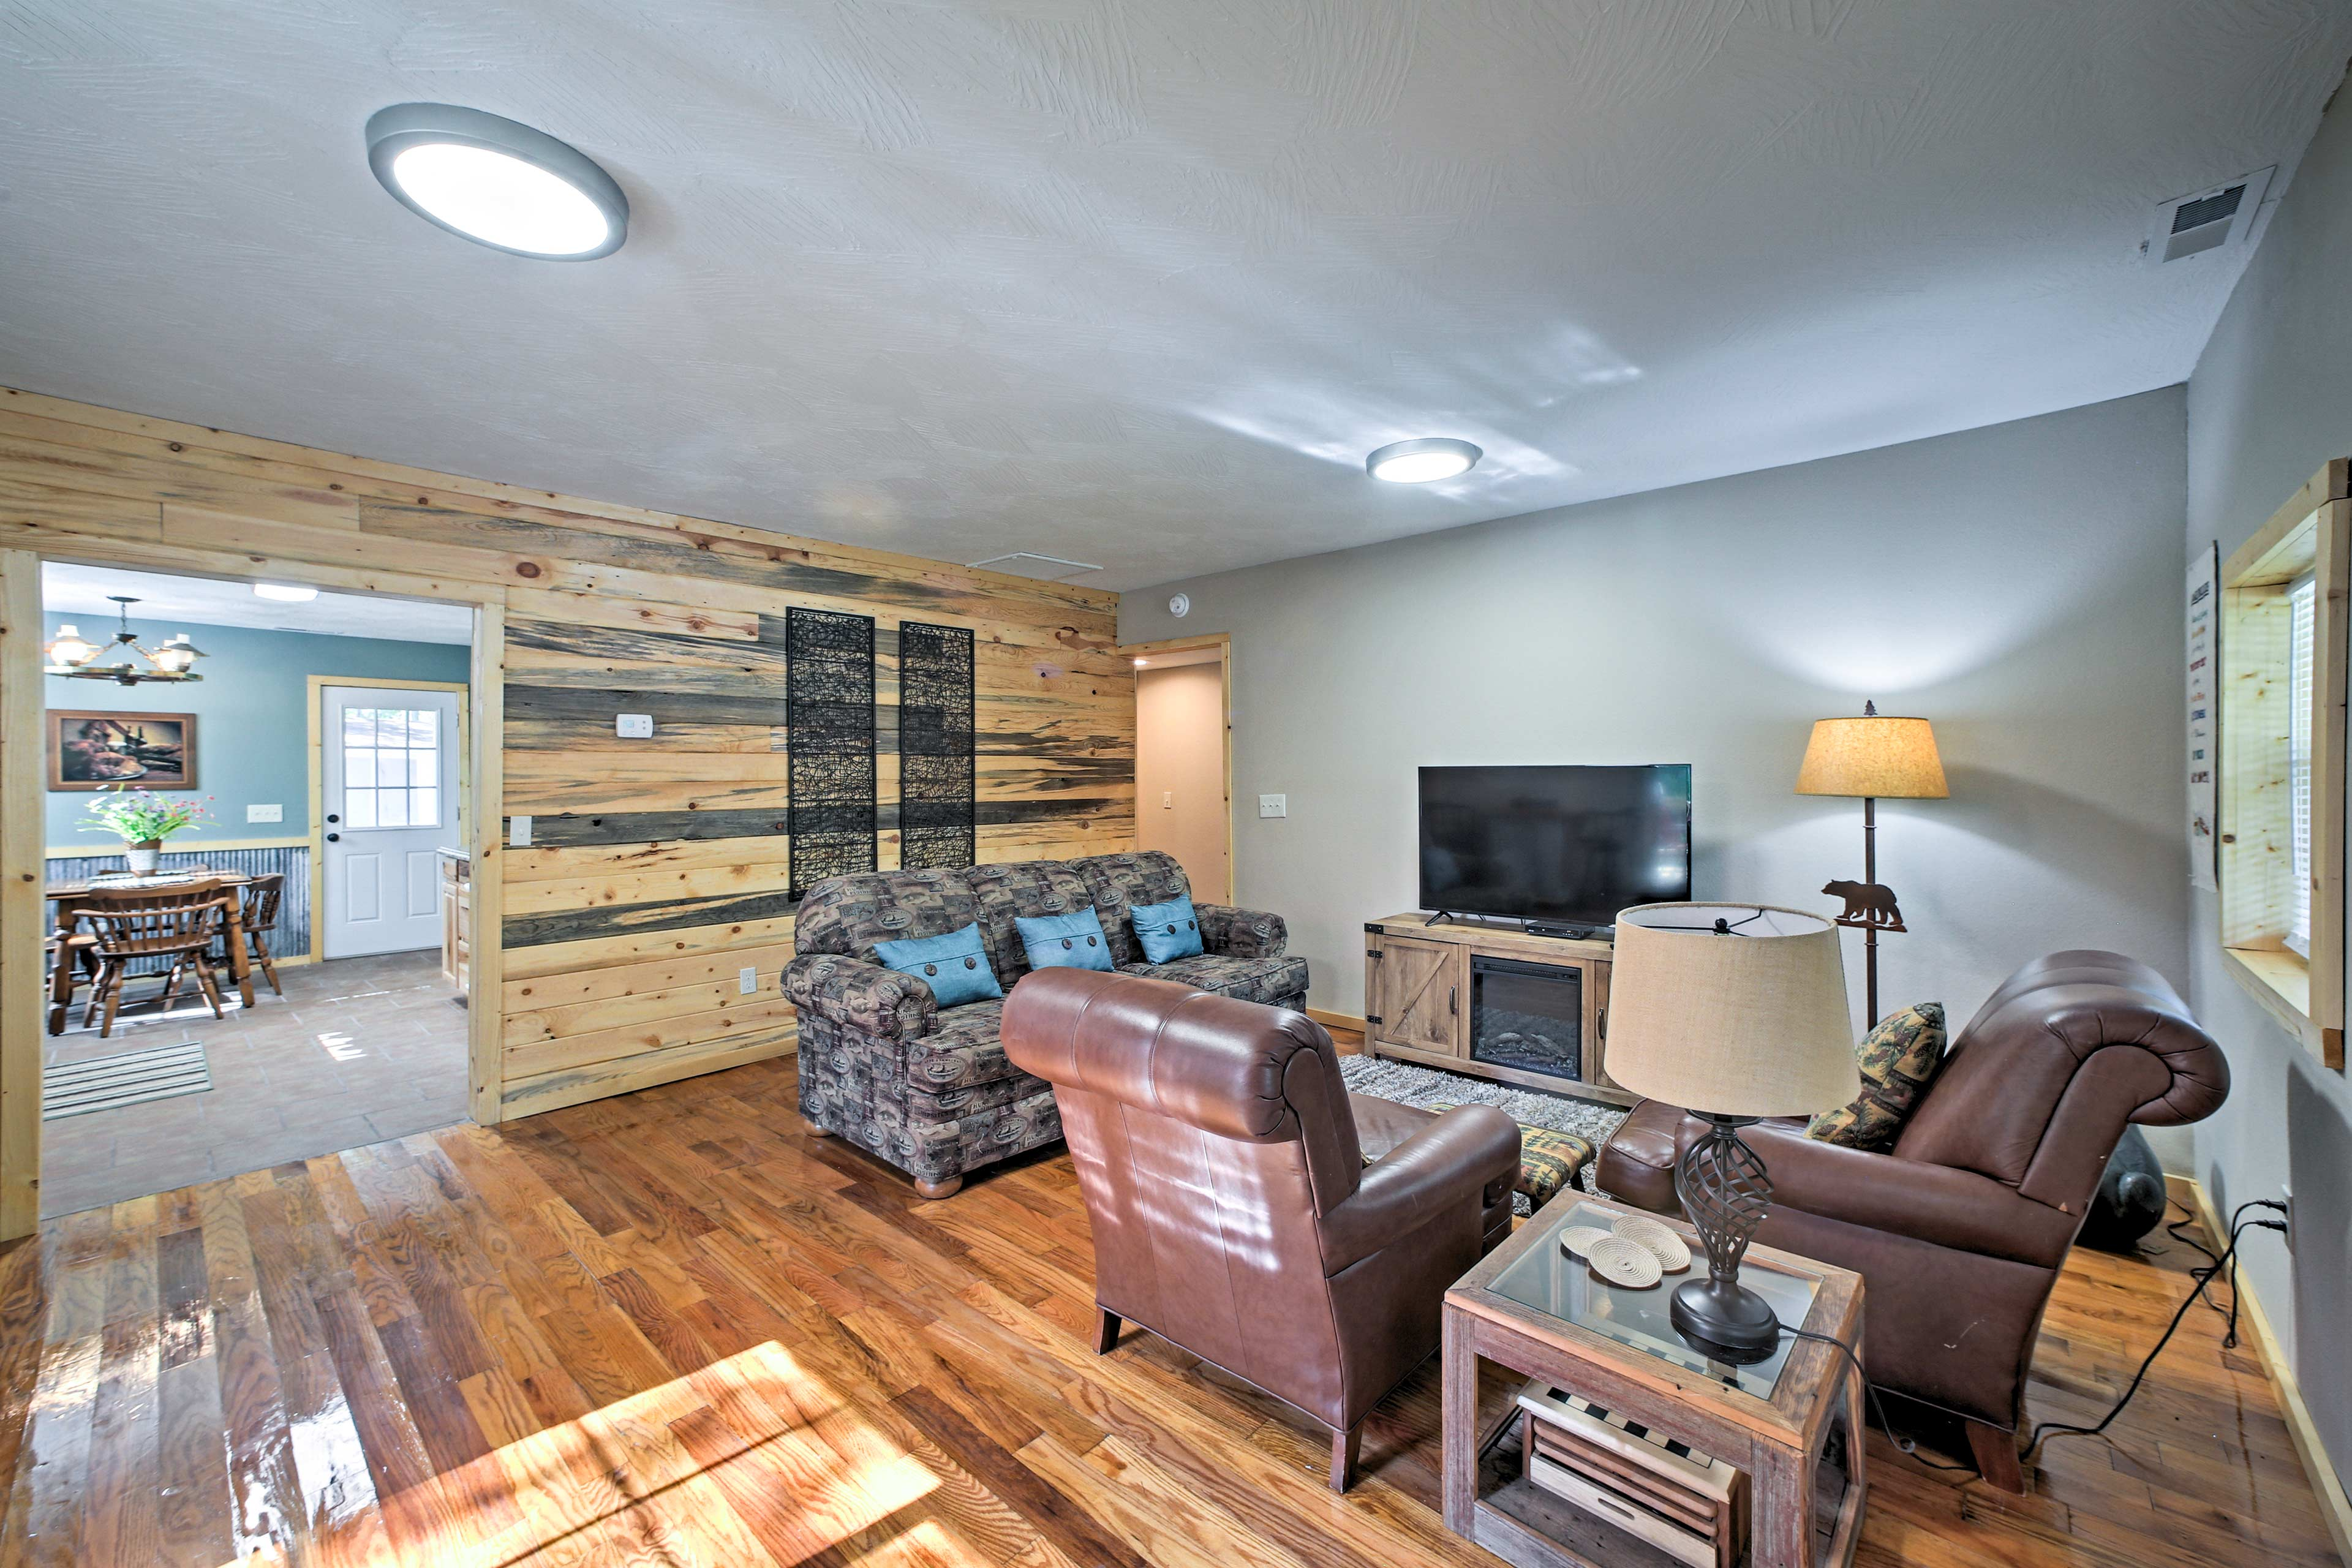 Enjoy a beautiful interior with 3 bedrooms and 1.5 bathrooms.